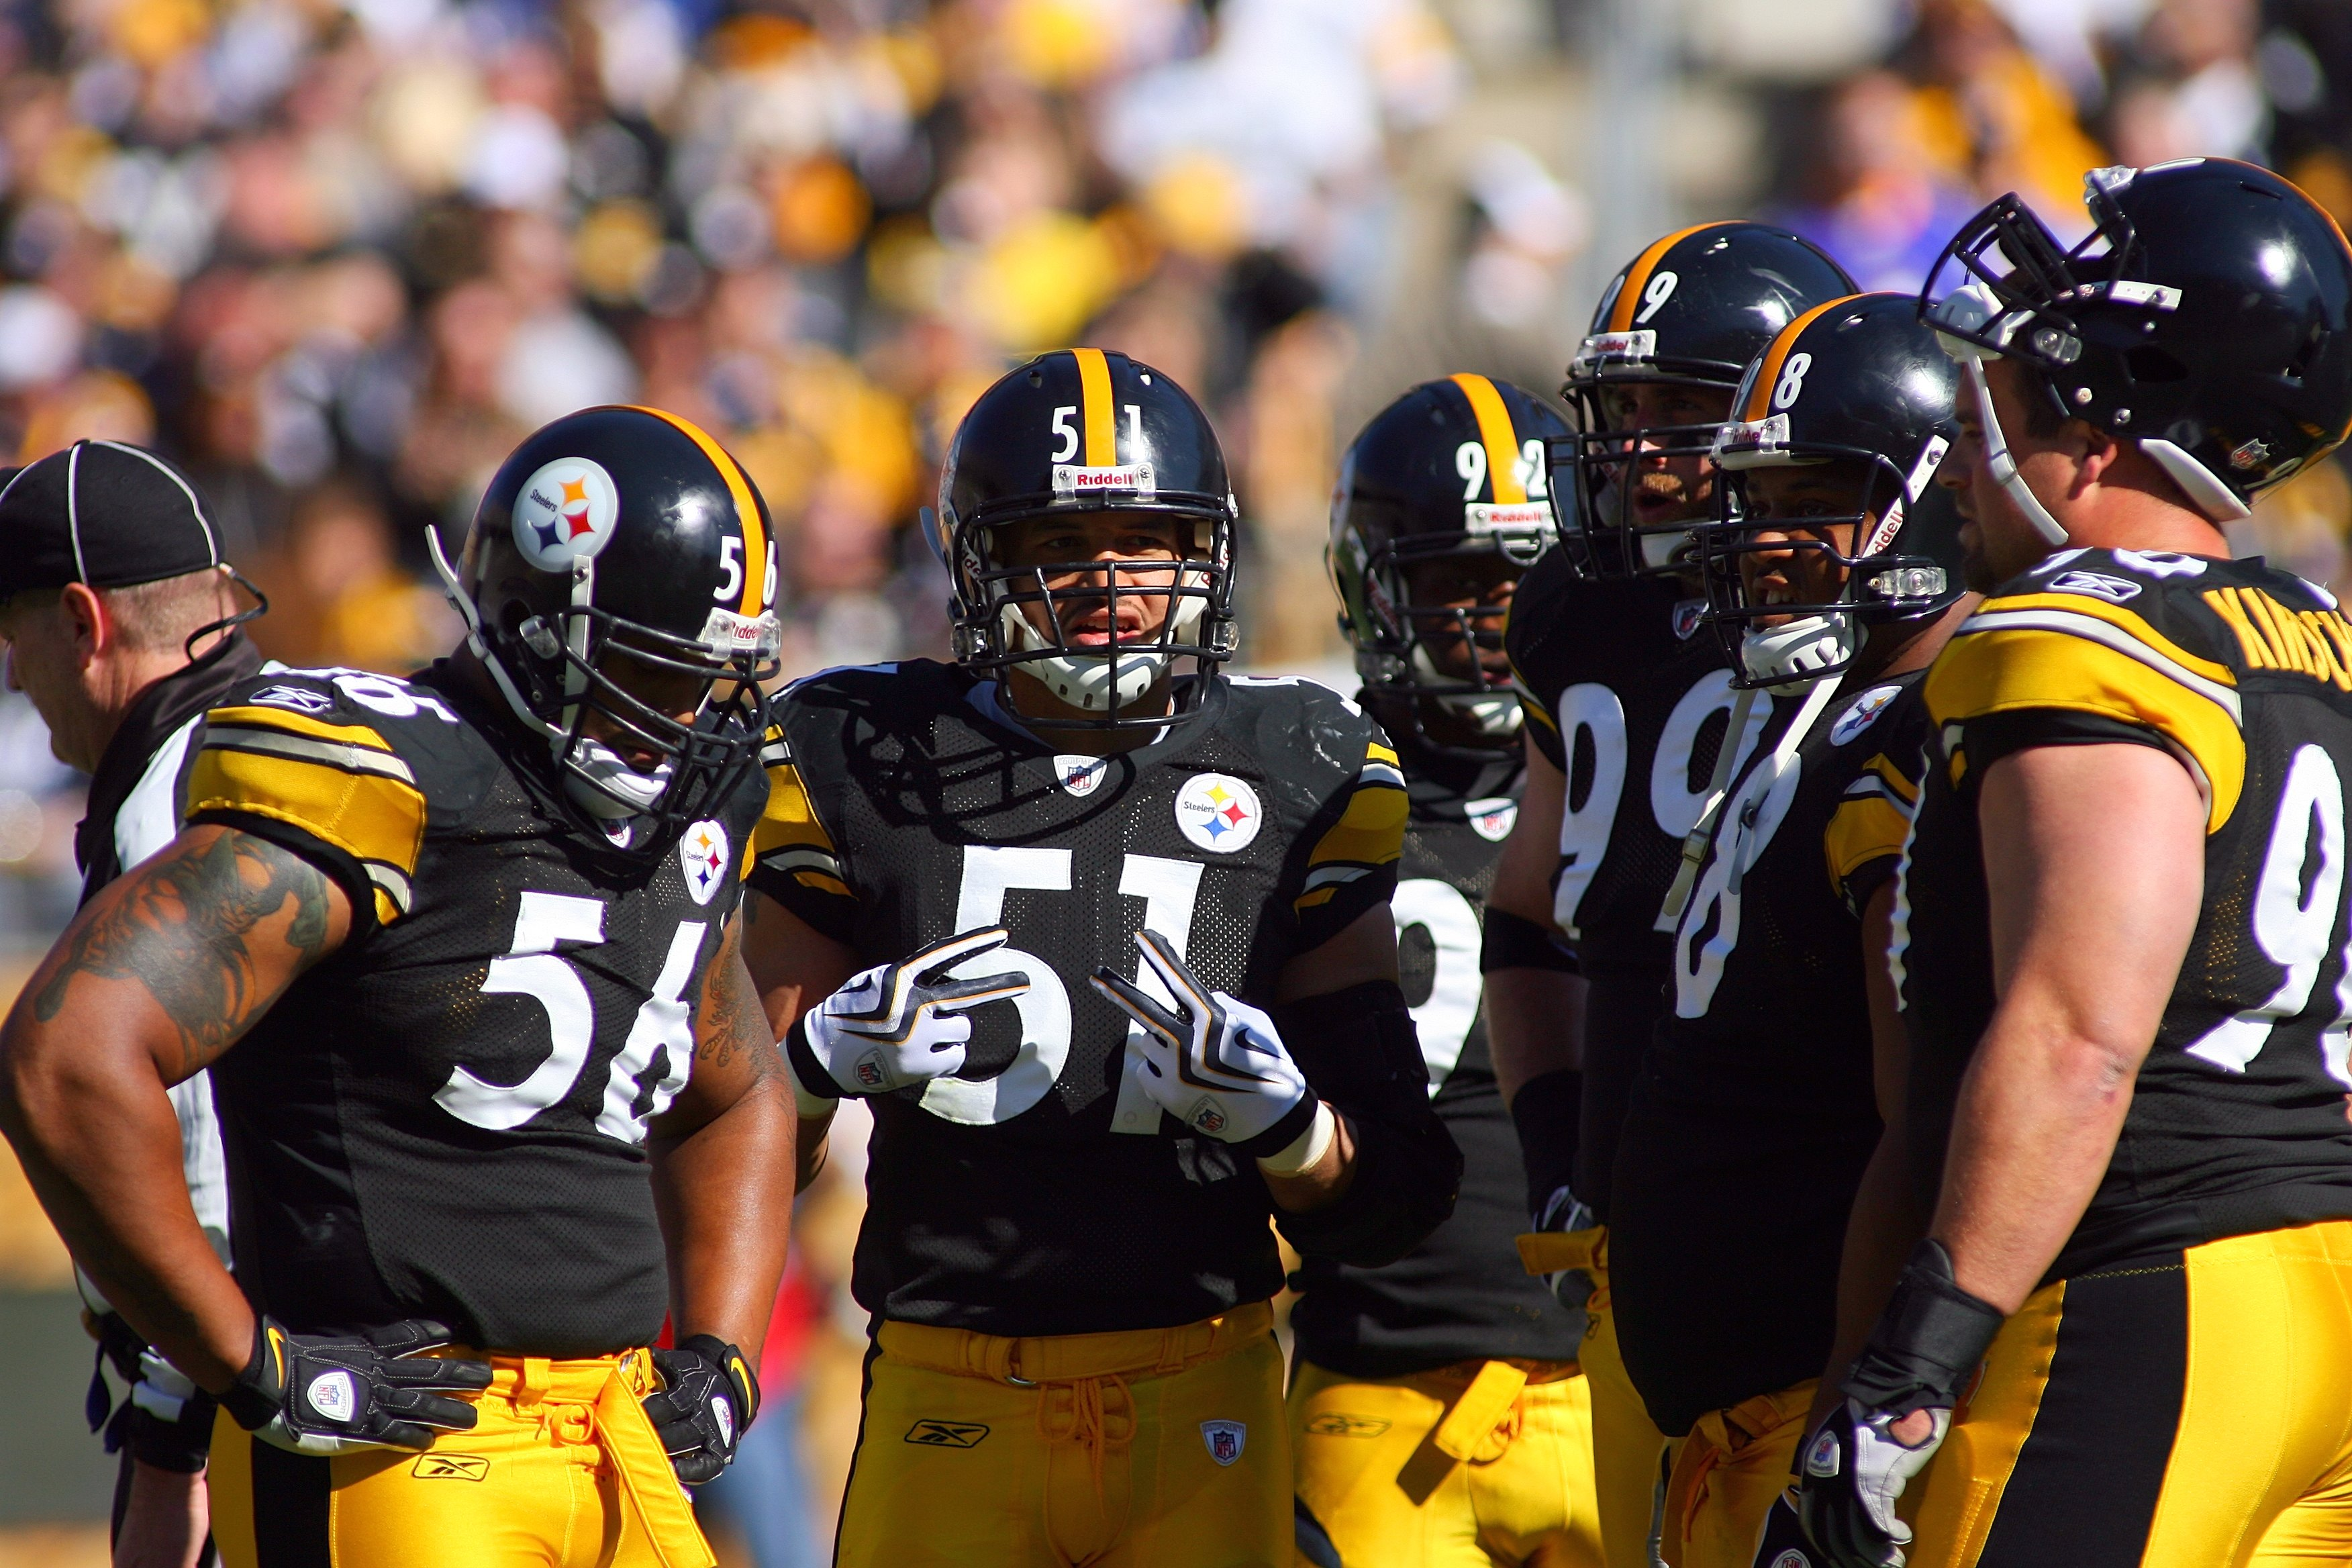 a1289988a57 PITTSBURGH - OCTOBER 25  James Farrior  51 of the Pittsburgh Steelers looks  on with